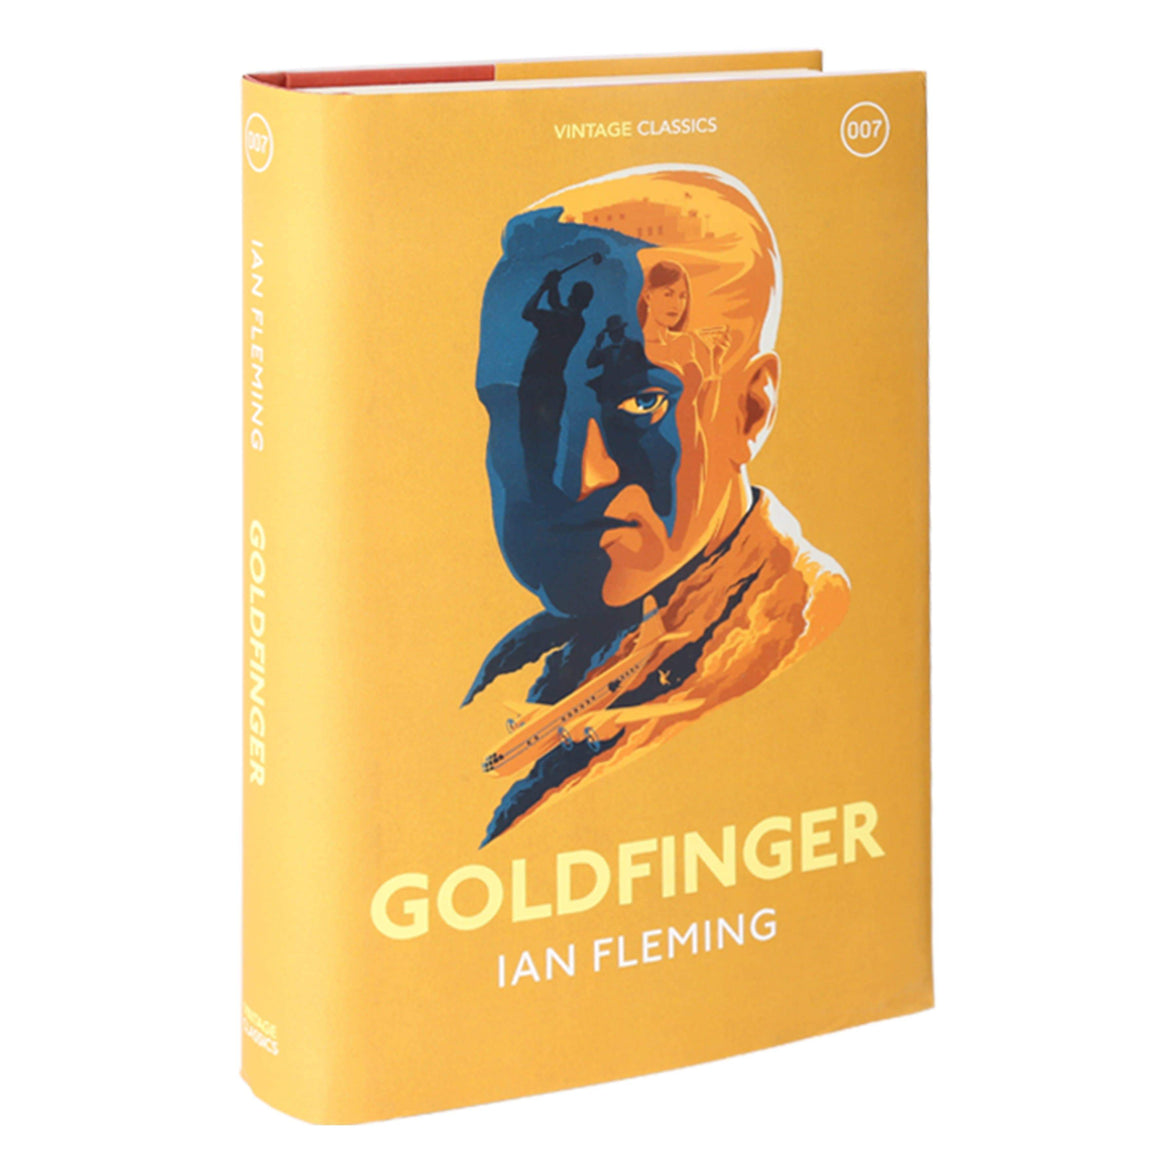 Goldfinger By Ian Fleming (Vintage Classics - Hardback) - 007STORE